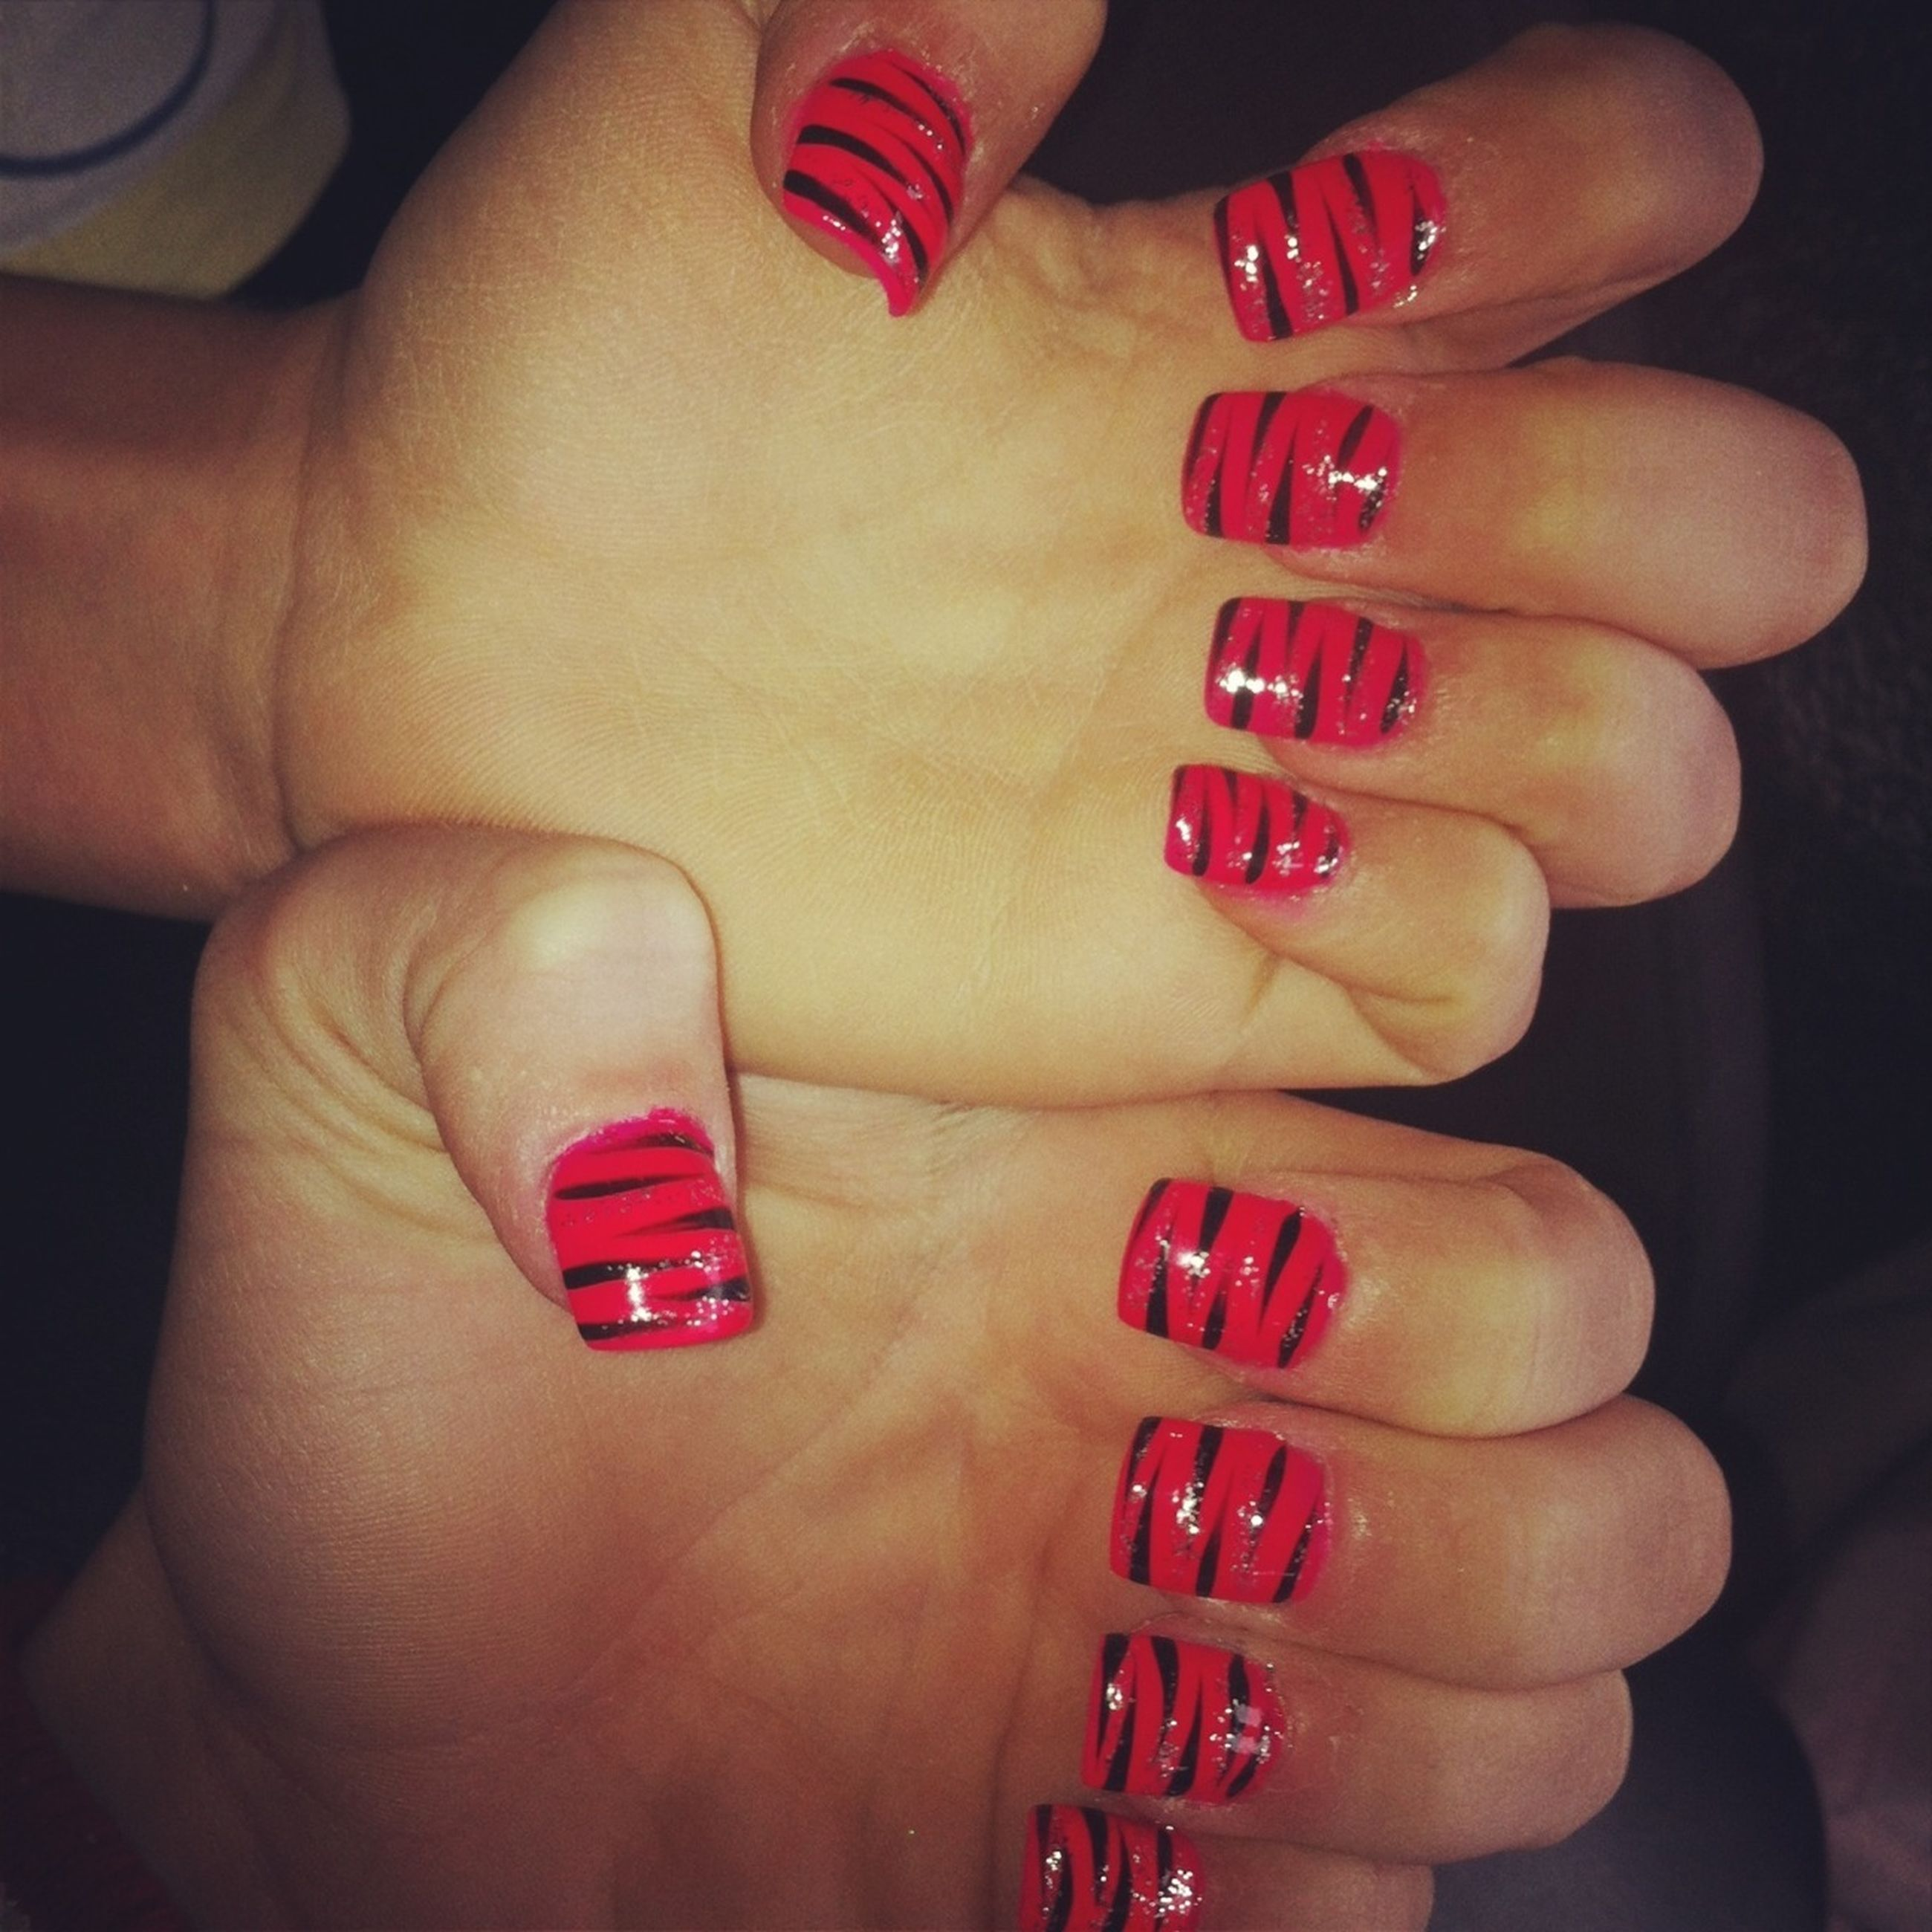 person, text, communication, part of, indoors, holding, human finger, western script, close-up, lifestyles, nail polish, cropped, love, red, leisure activity, ring